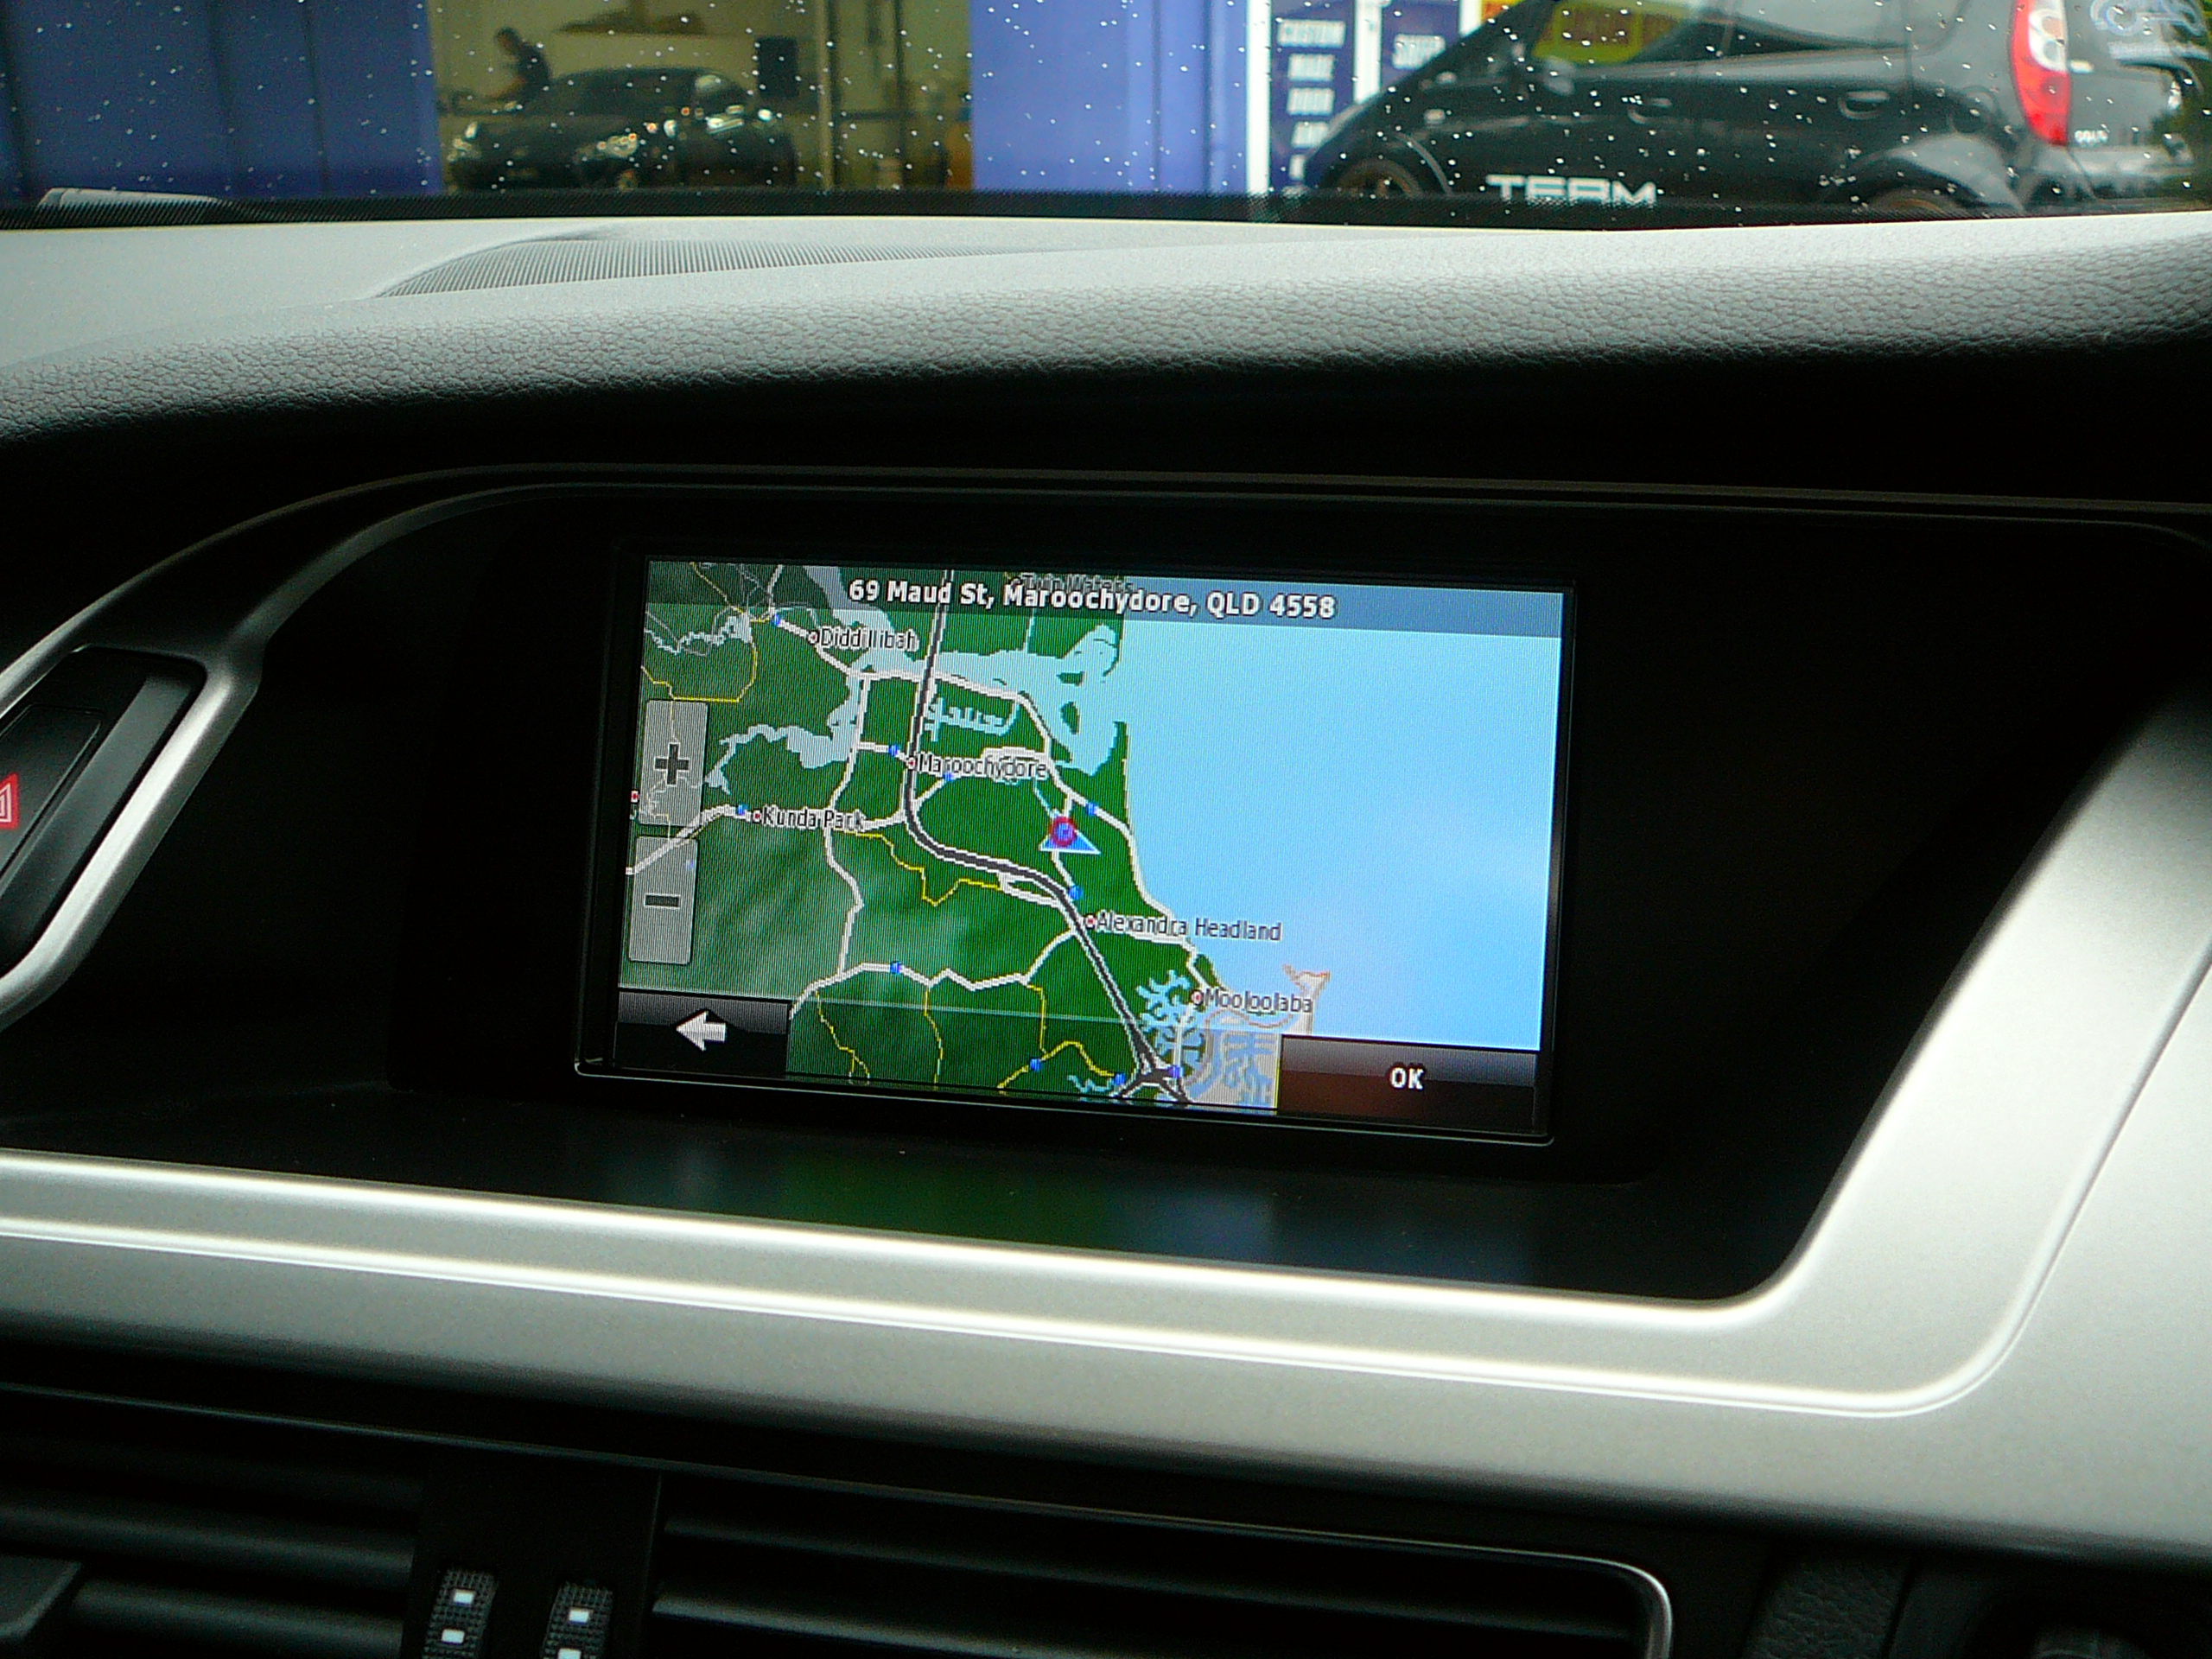 Audi A4 2011, GPS Navigation Touch Screen – Uses Factory Audi Screen